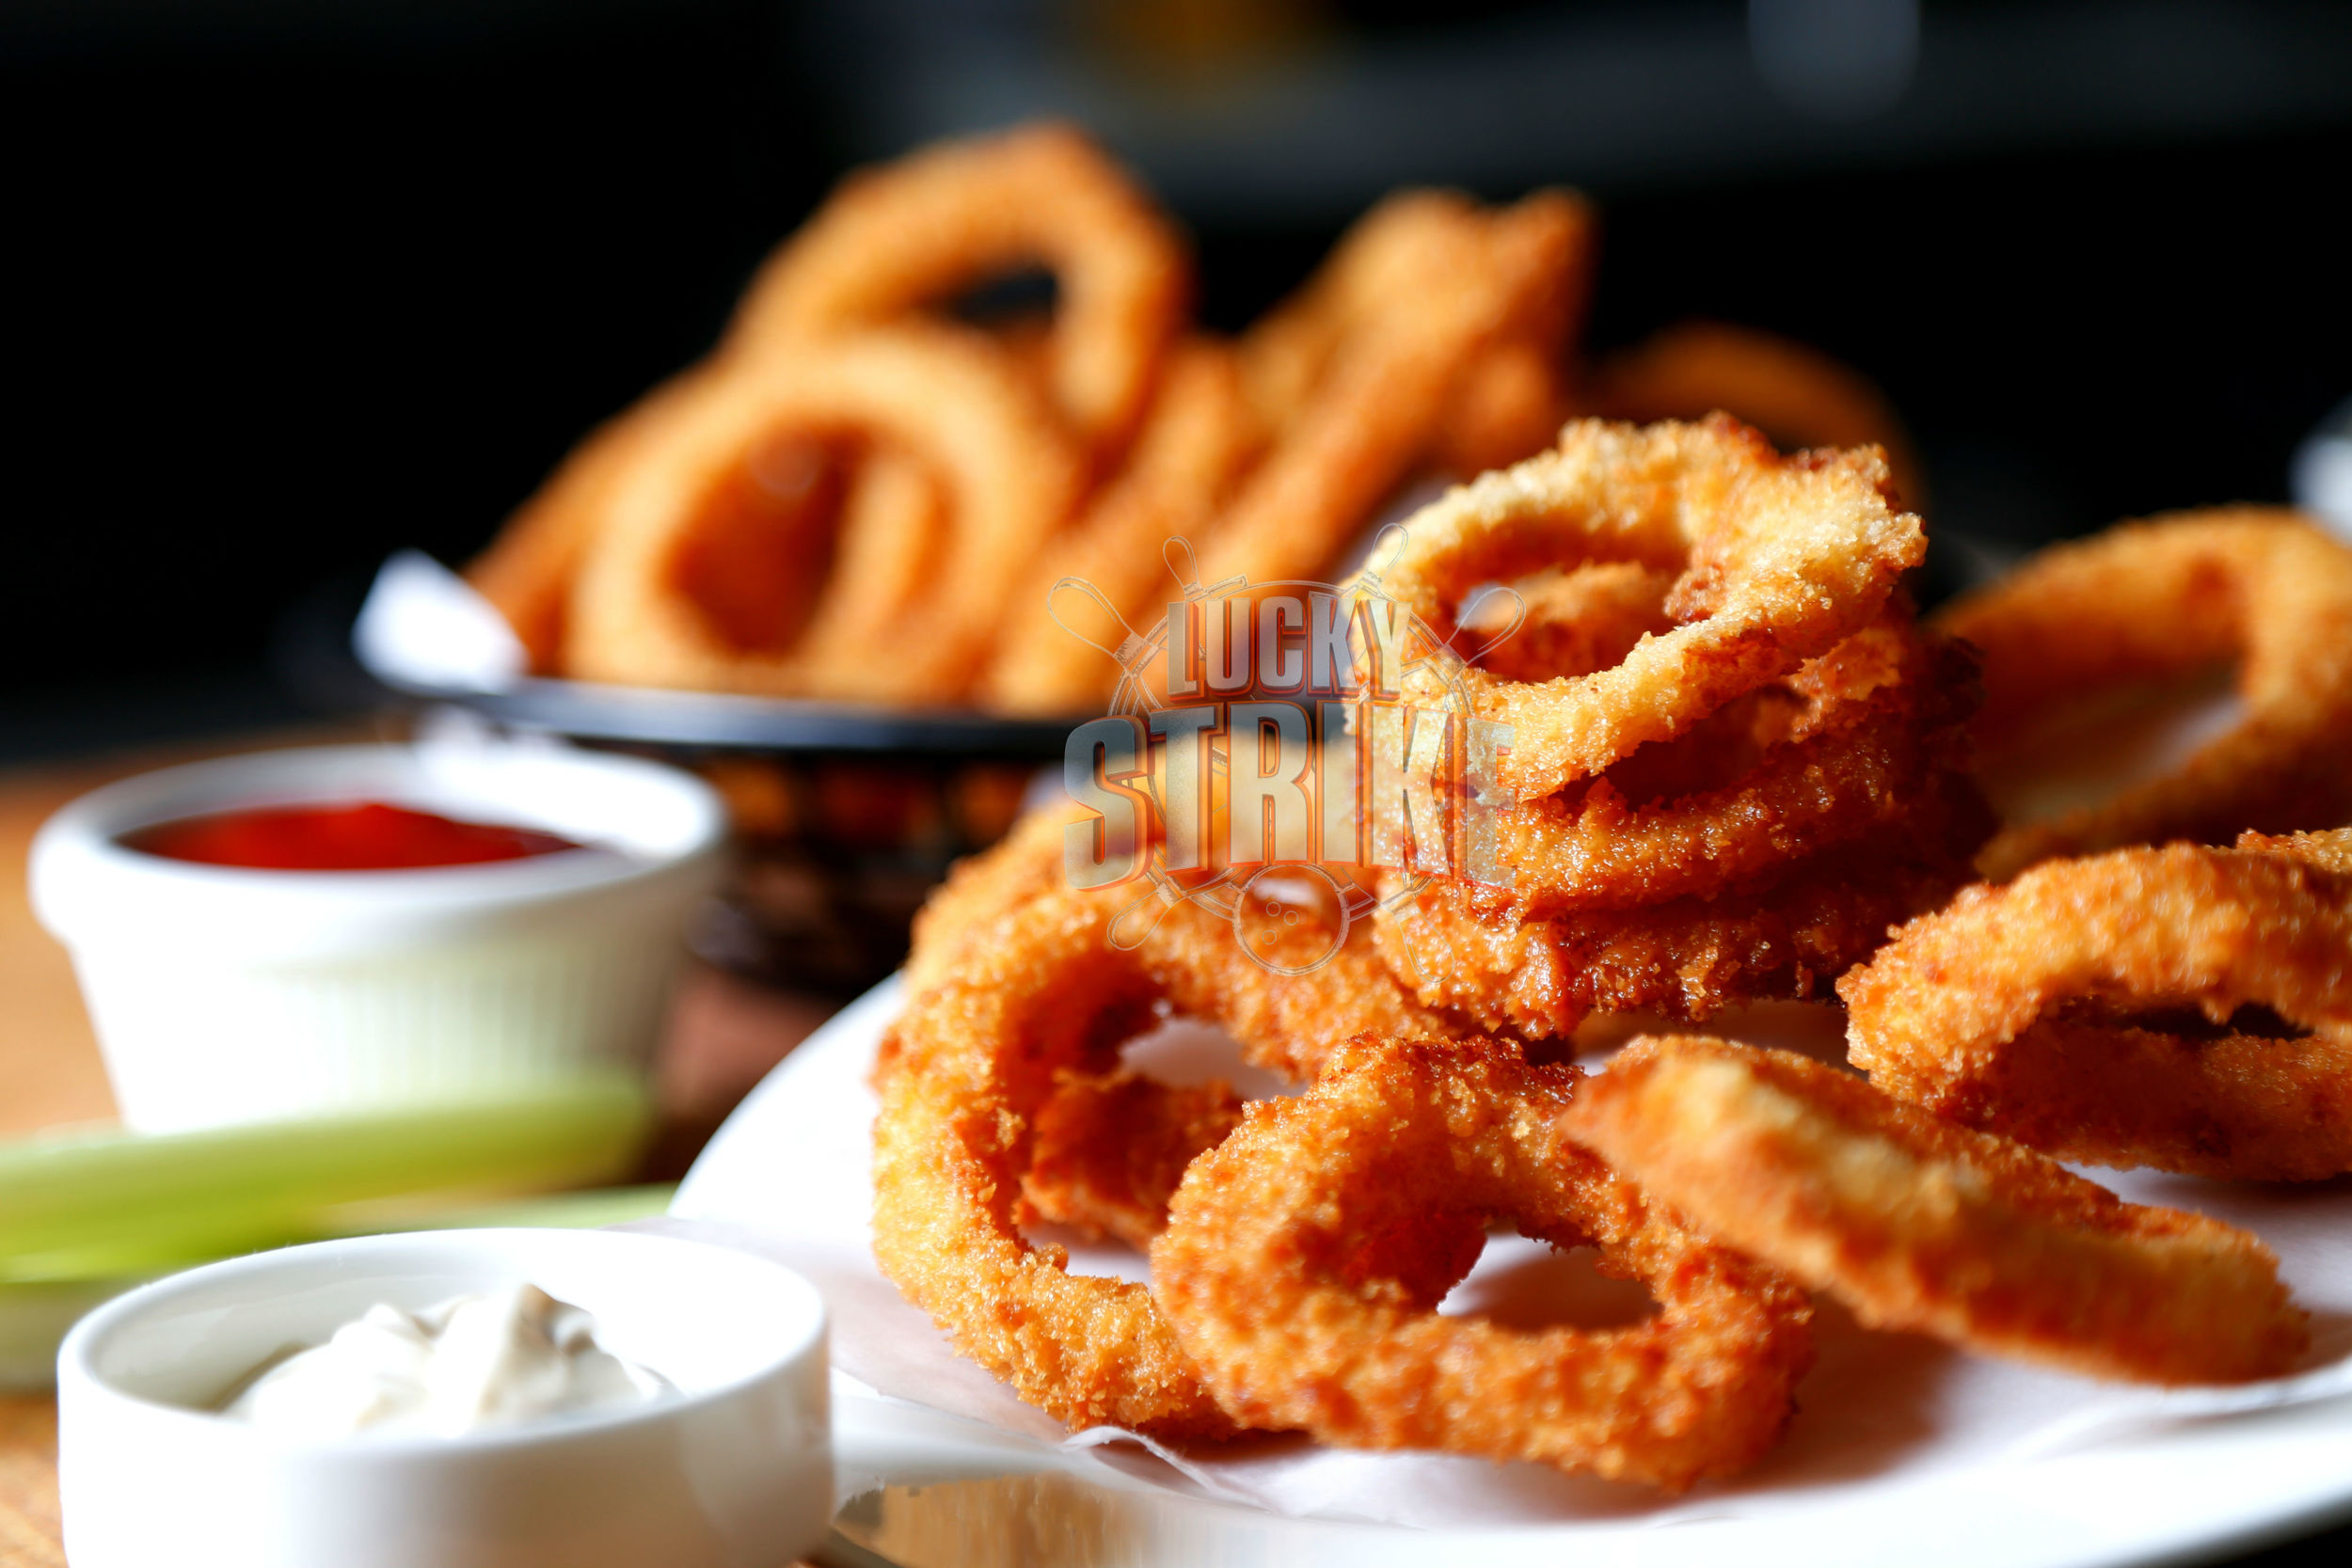 CRISPY FRIED CALAMARI                                          20   The best fried squid, commonly known by the Italias as calamari, crispy on the outside, tender on the inside    ONION RINGS                                                            10